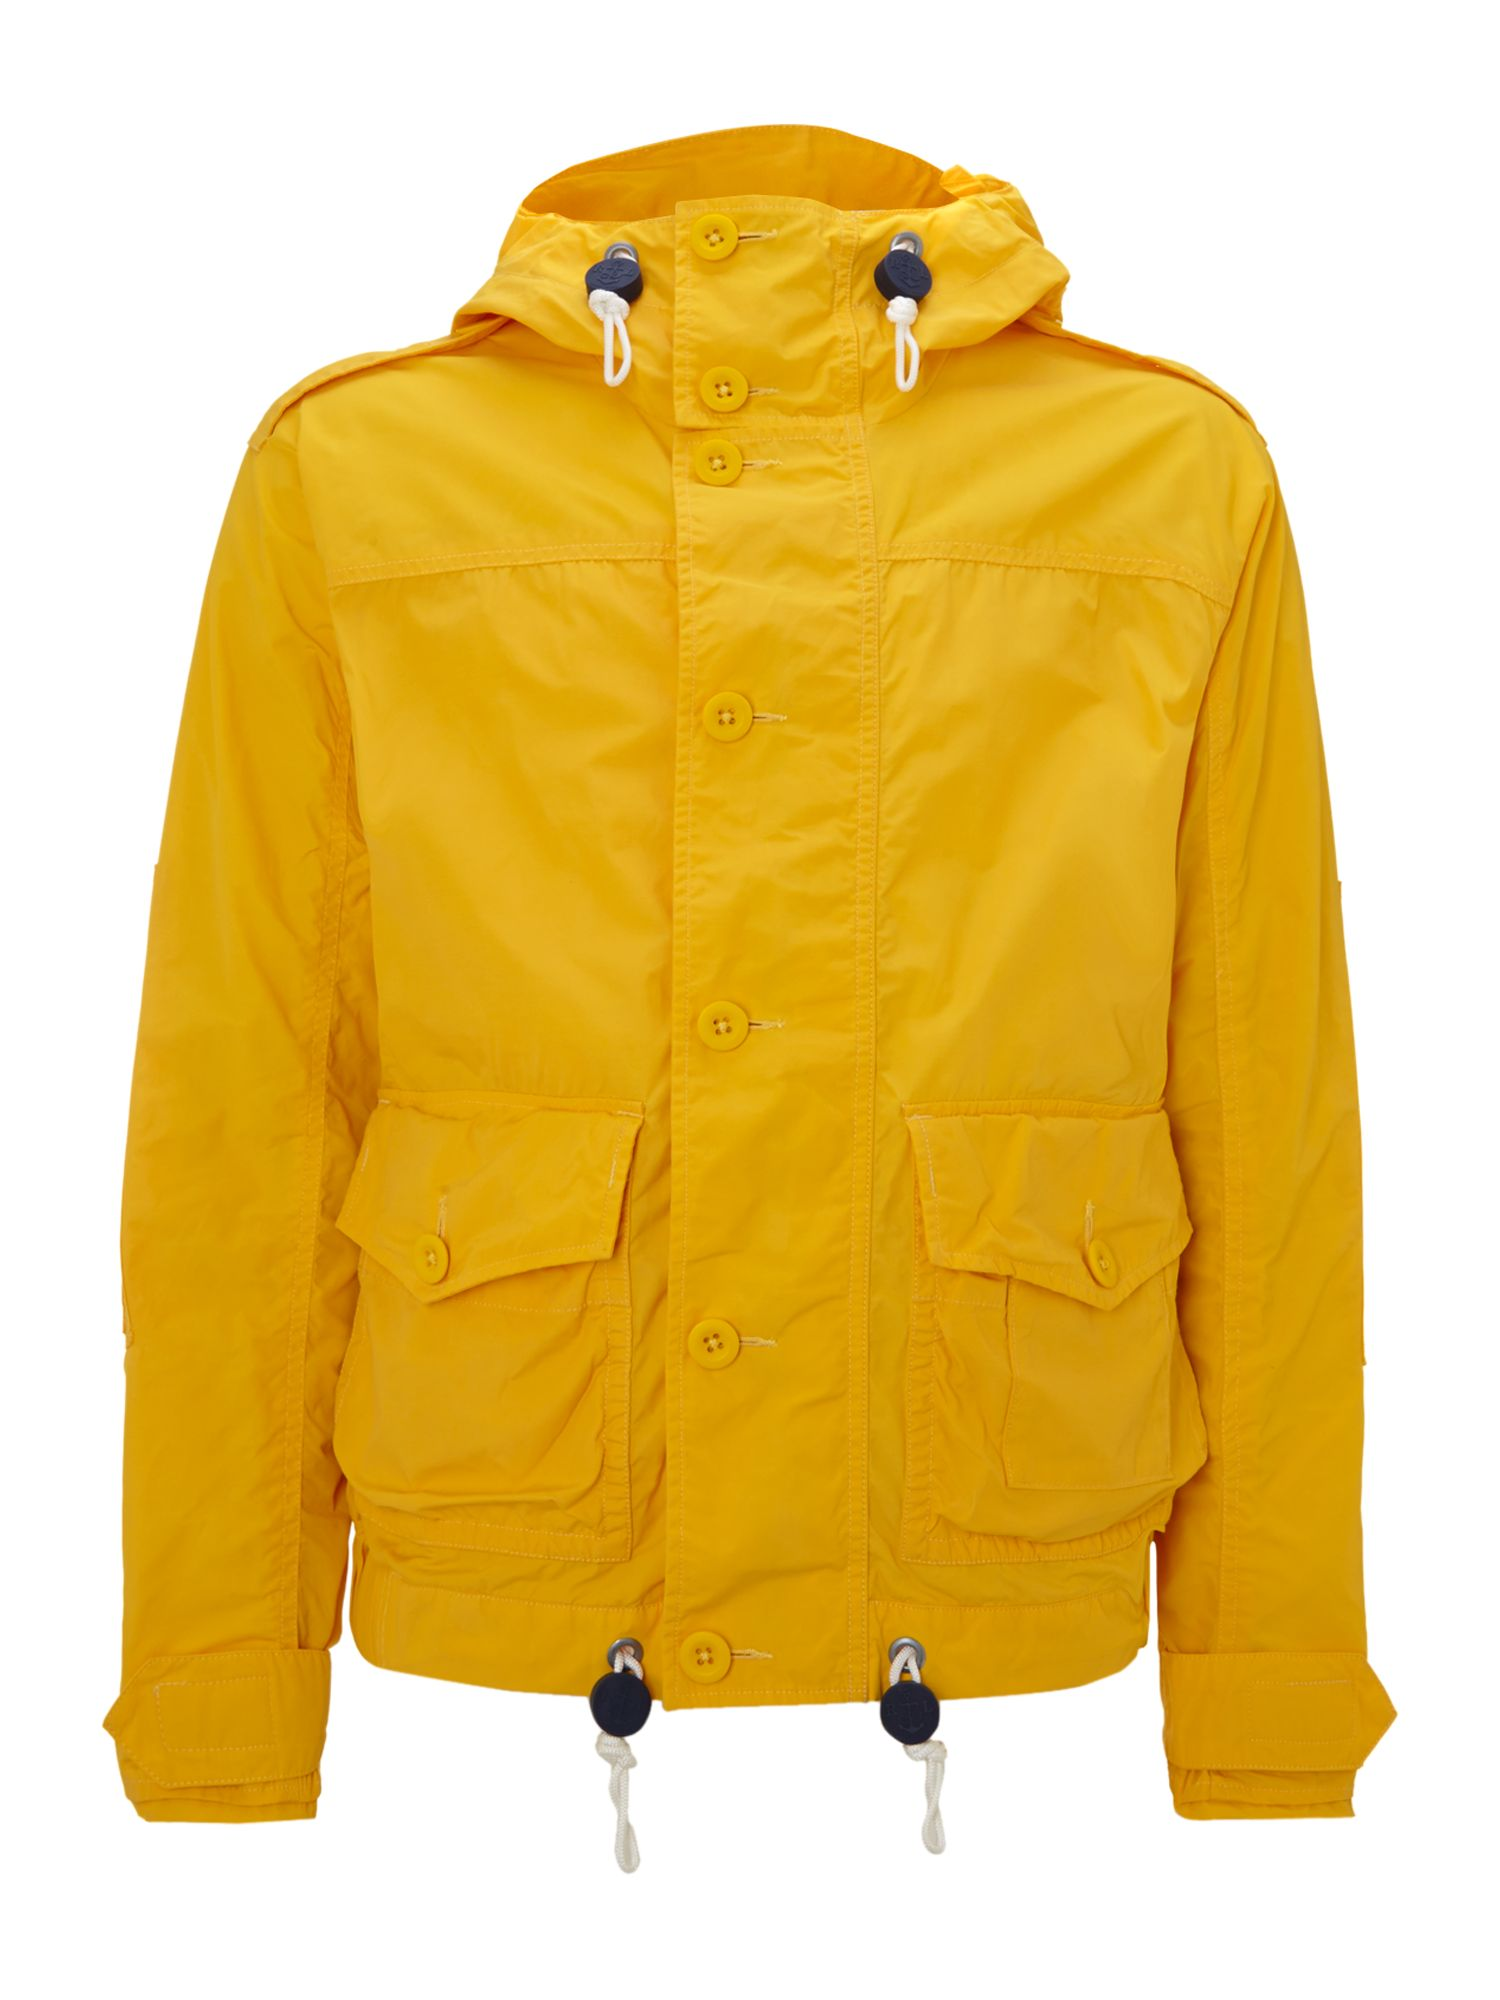 Dockside hooded windbreaker jacket